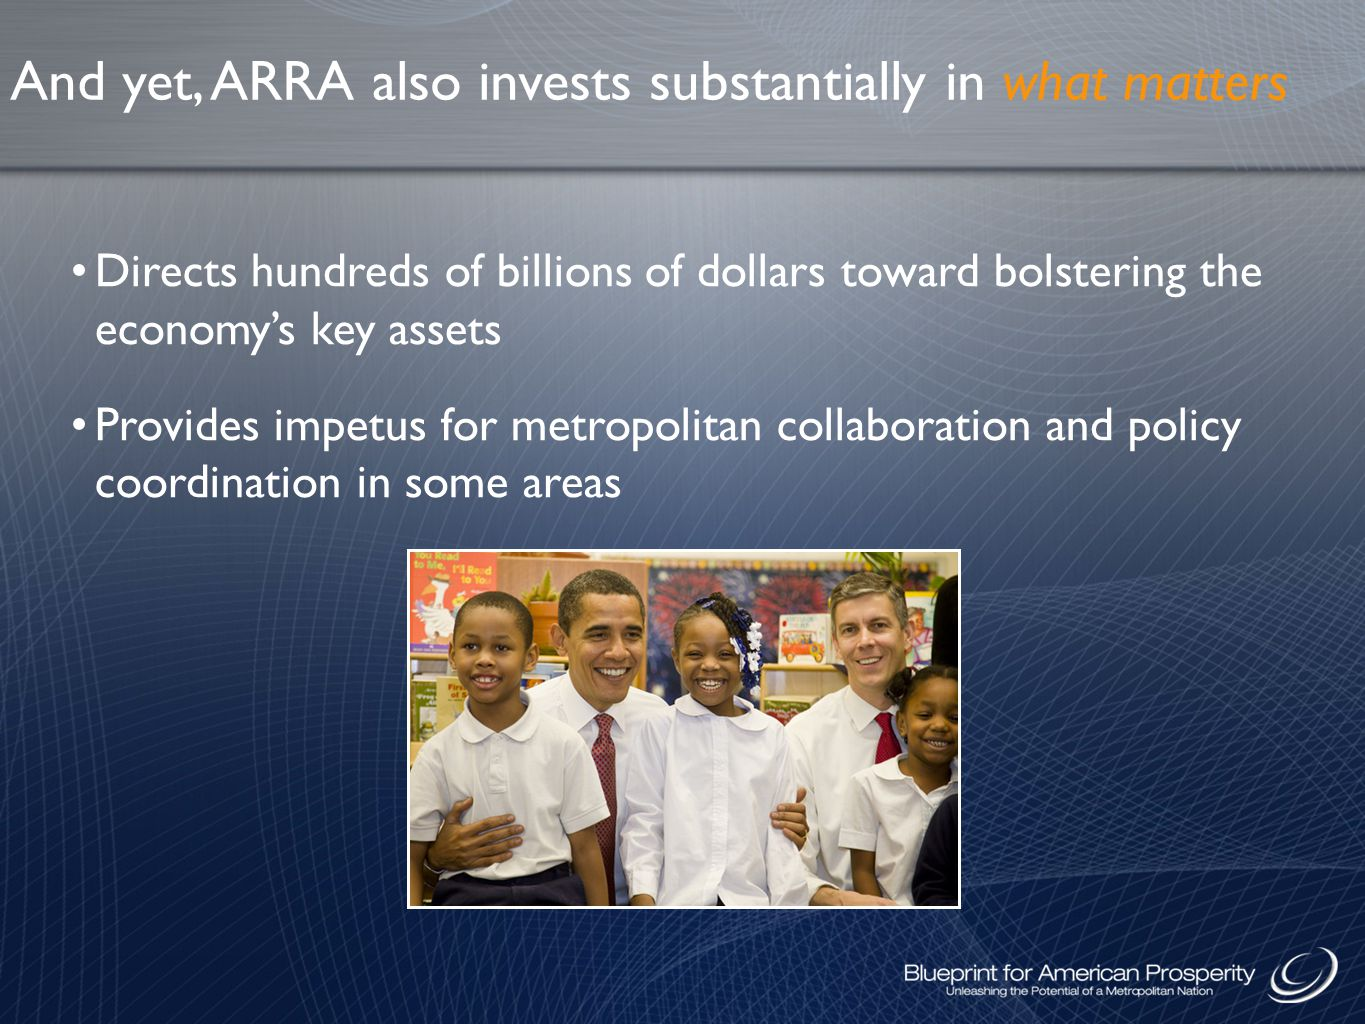 And yet, ARRA also invests substantially in what matters Directs hundreds of billions of dollars toward bolstering the economy's key assets Provides impetus for metropolitan collaboration and policy coordination in some areas